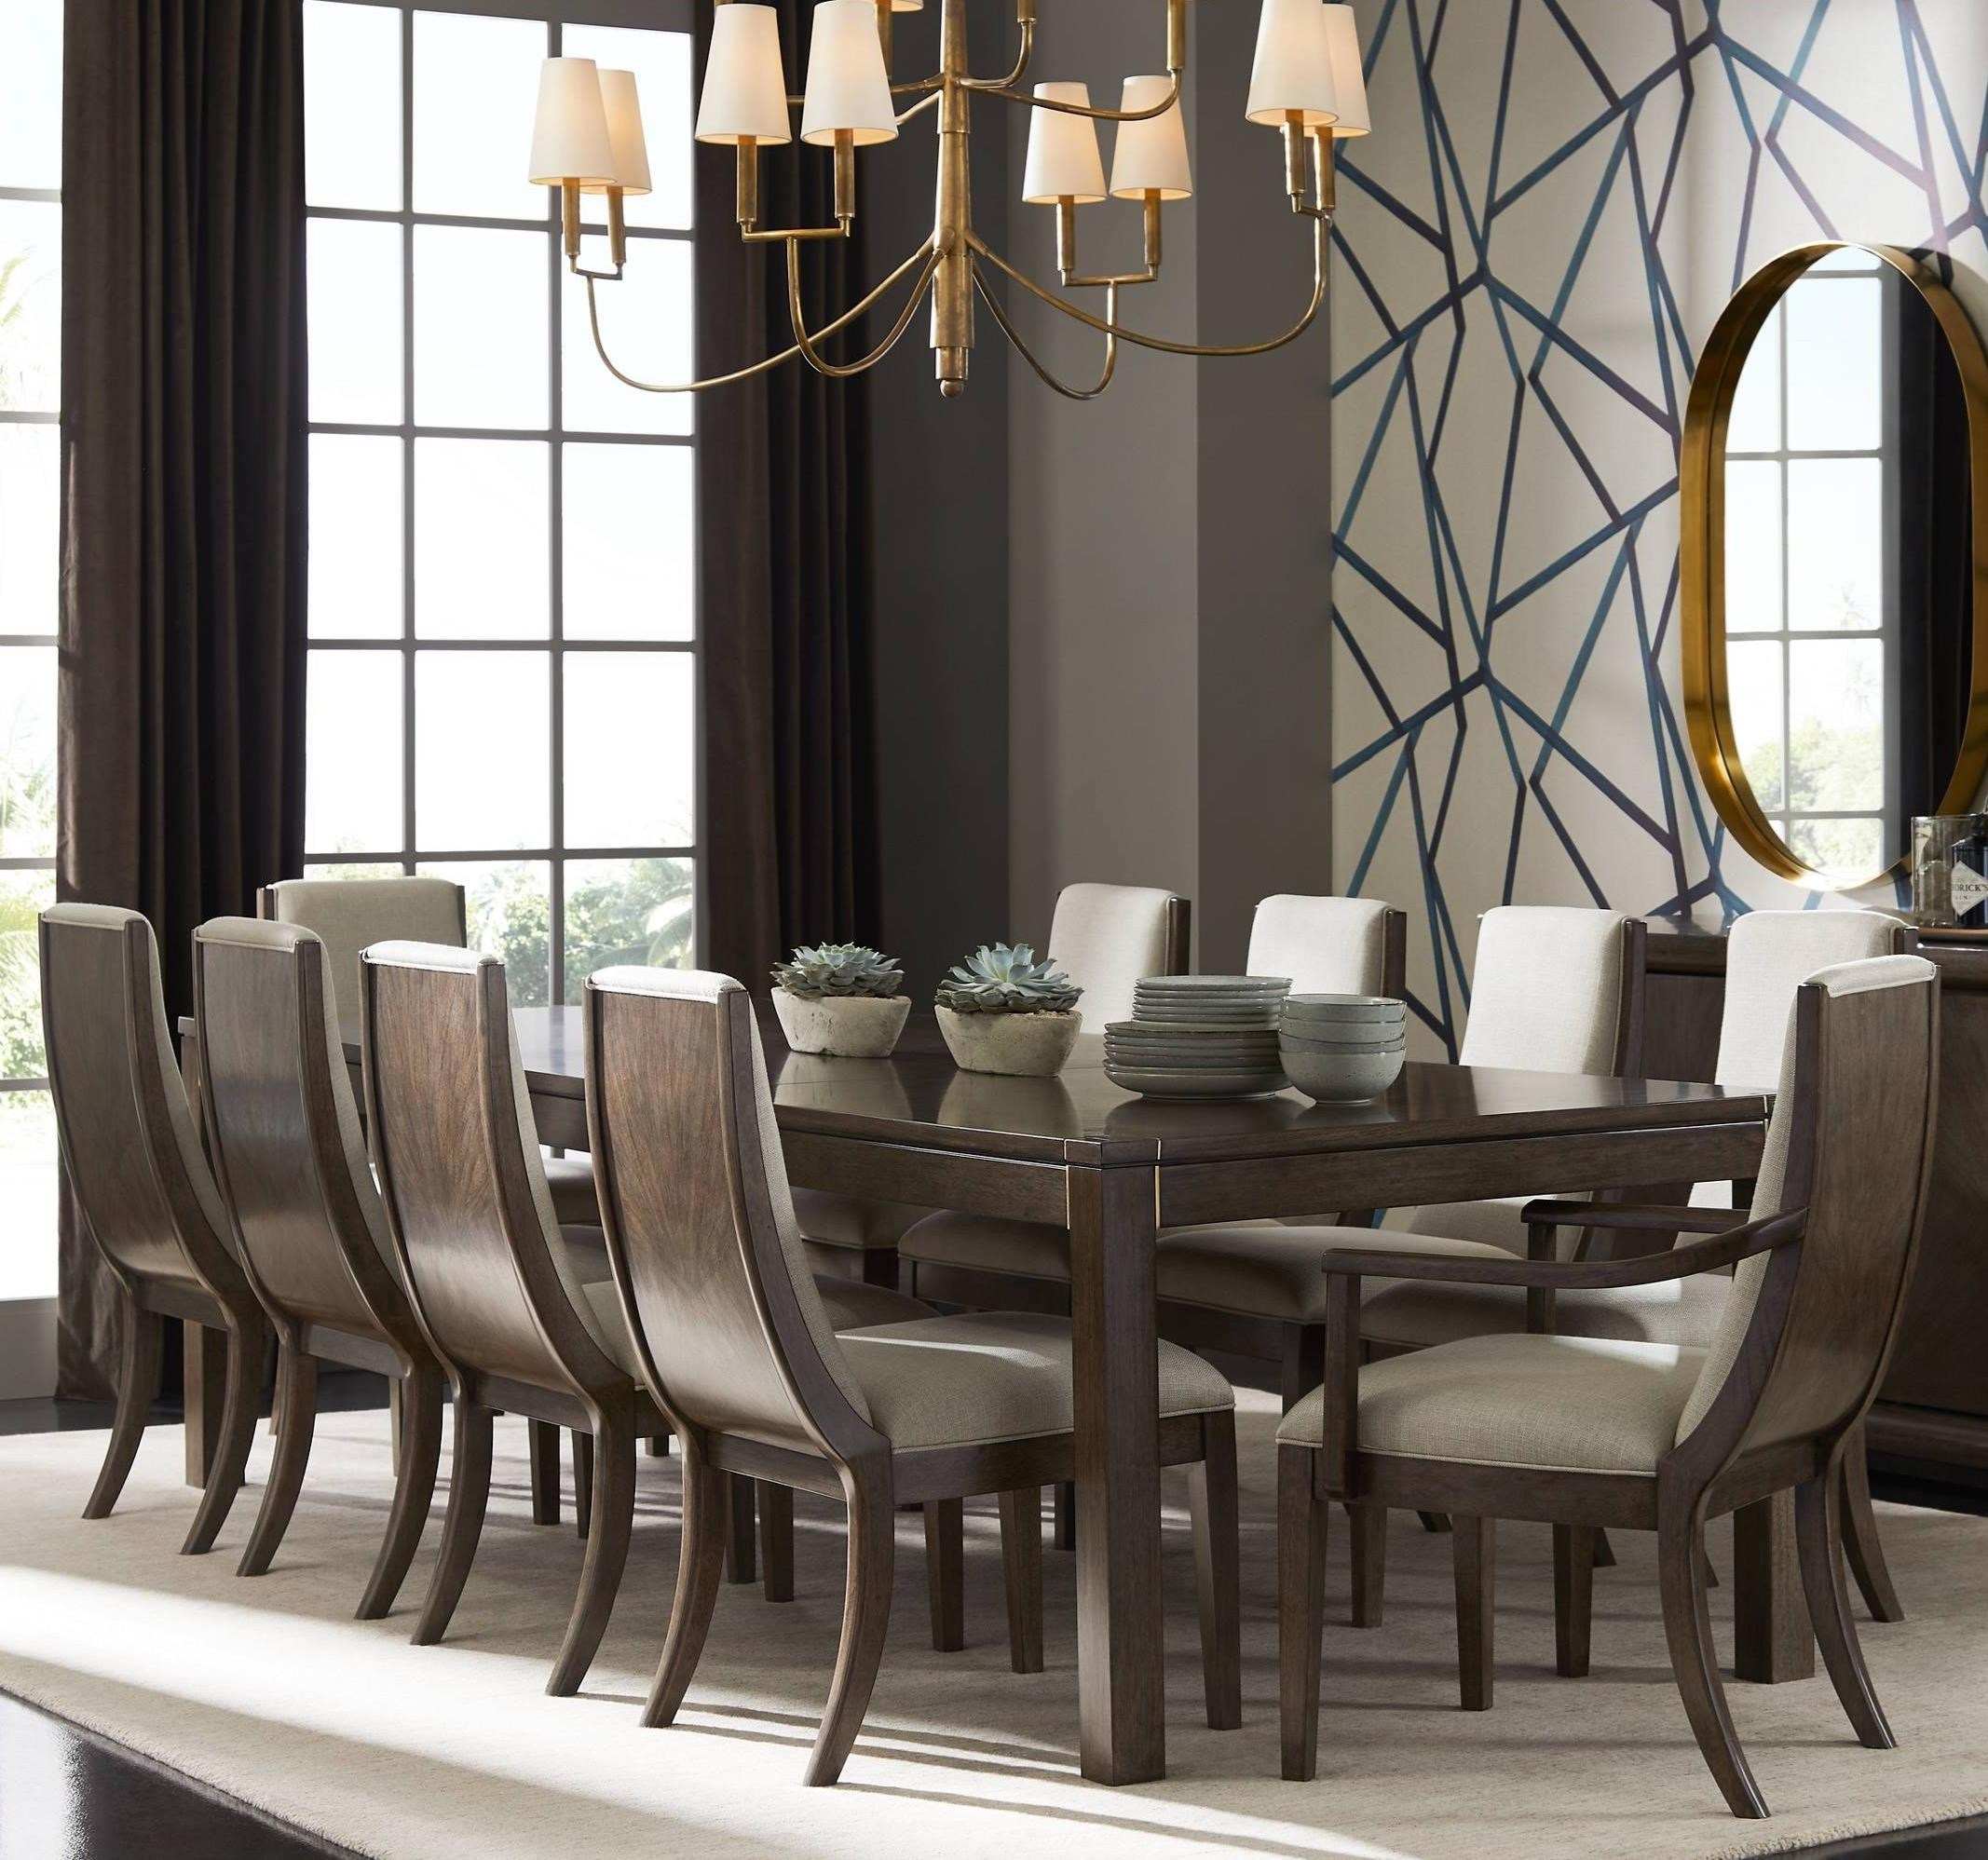 Dining Room Set For 2: Panavista 11-Piece Archetype Dining Table Set